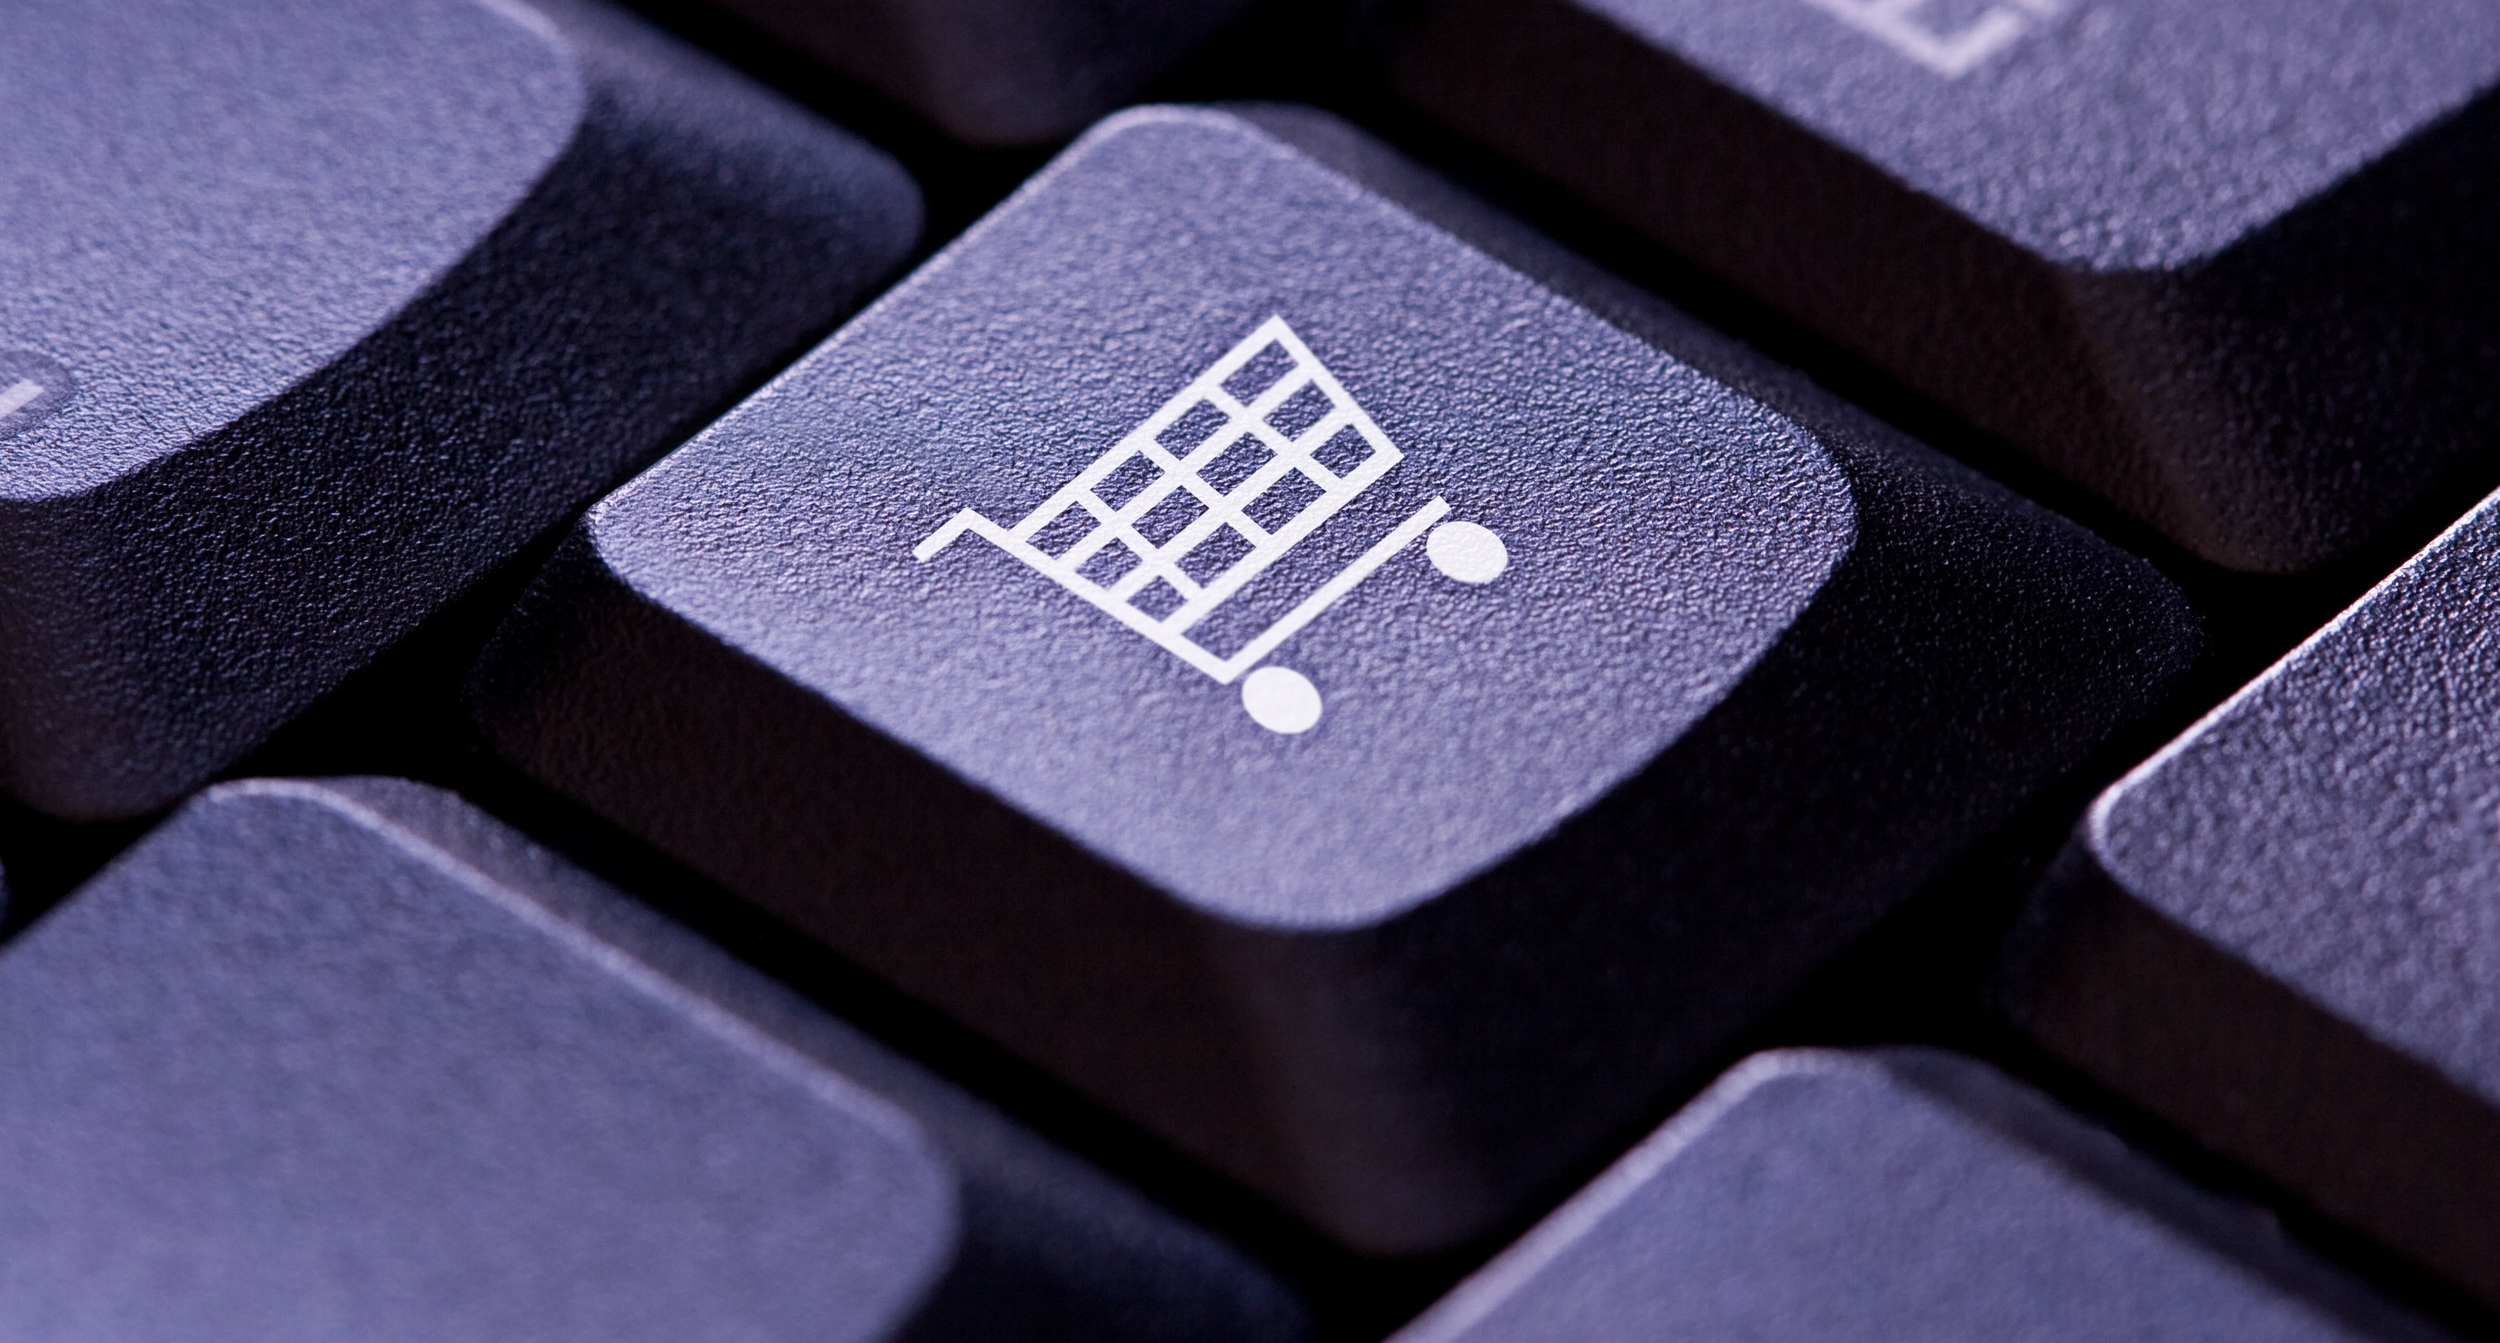 Image; A purple keyboard, with the photo centered on one key which features the logo of a shopping cart.